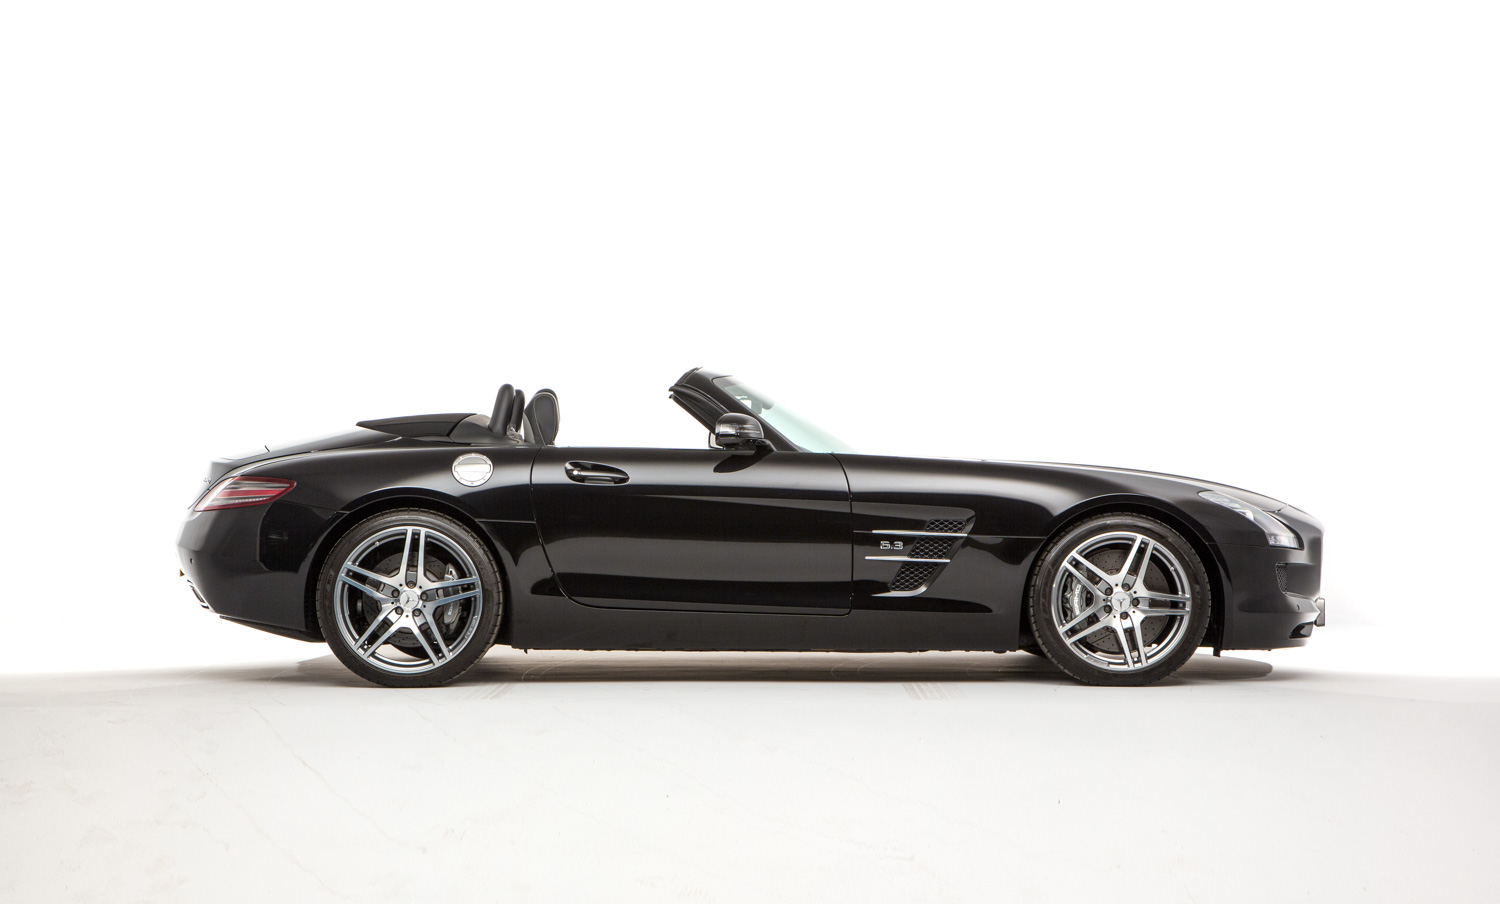 Mercedes sls amg roadster the octane collection mercedes sls amg roadster for sale exterior 8 publicscrutiny Choice Image